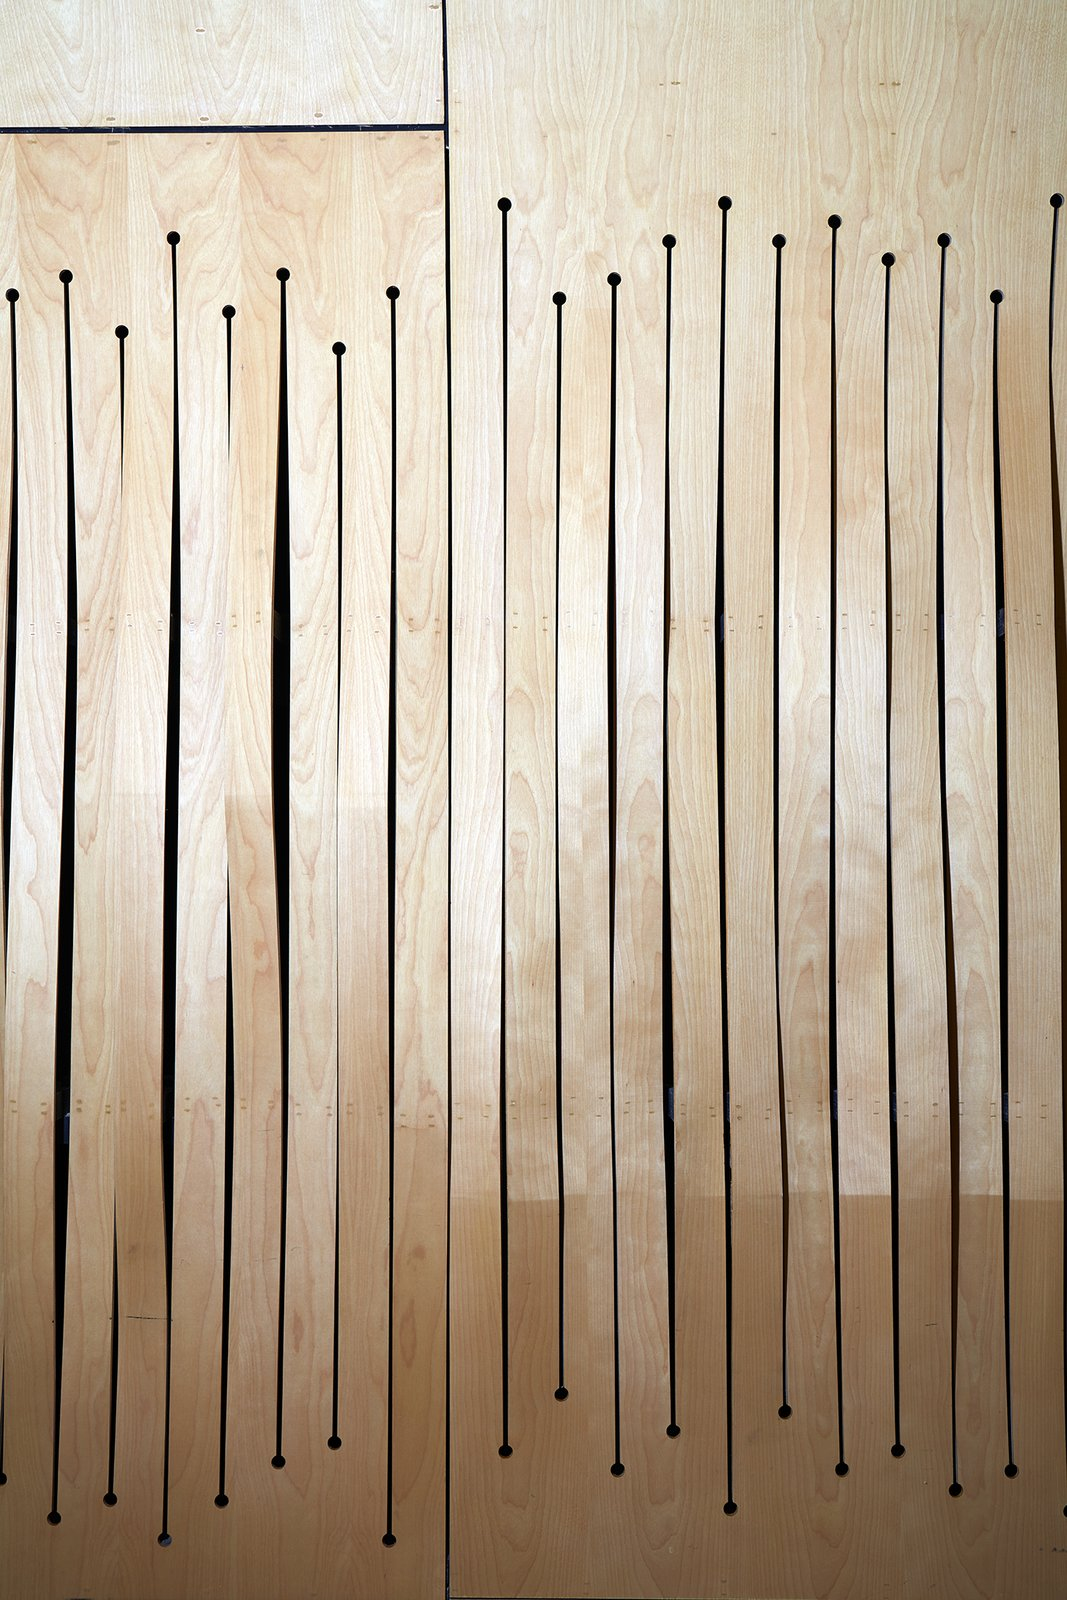 A screen of milled bent birch plywood conceals acoustical panels. Like the undulating ceiling, the screen's wave-like design helps refract sound. - New Haven, Connecticut Dwell Magazine : September / October 2017  Photo 12 of 20 in A 1905 Fire Station in Connecticut Is Converted Into a Community Hub For Art and Music